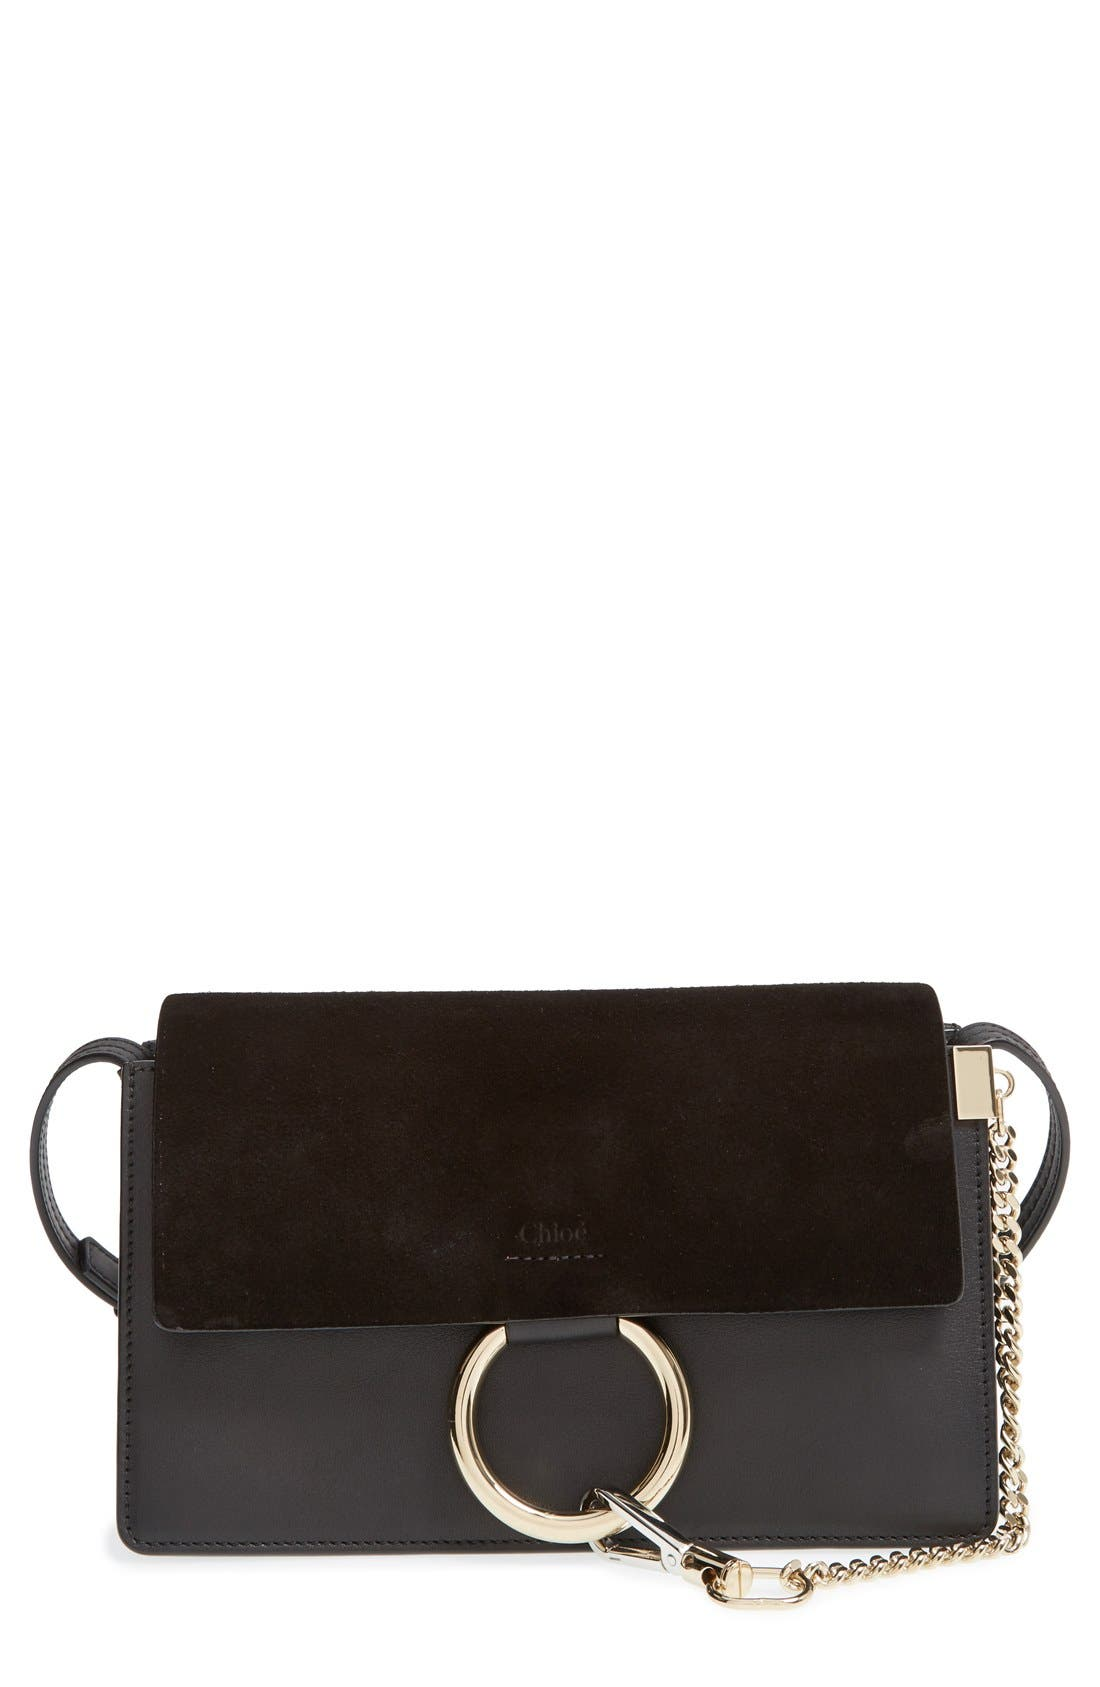 Main Image - Chloé Small Faye Leather Shoulder Bag